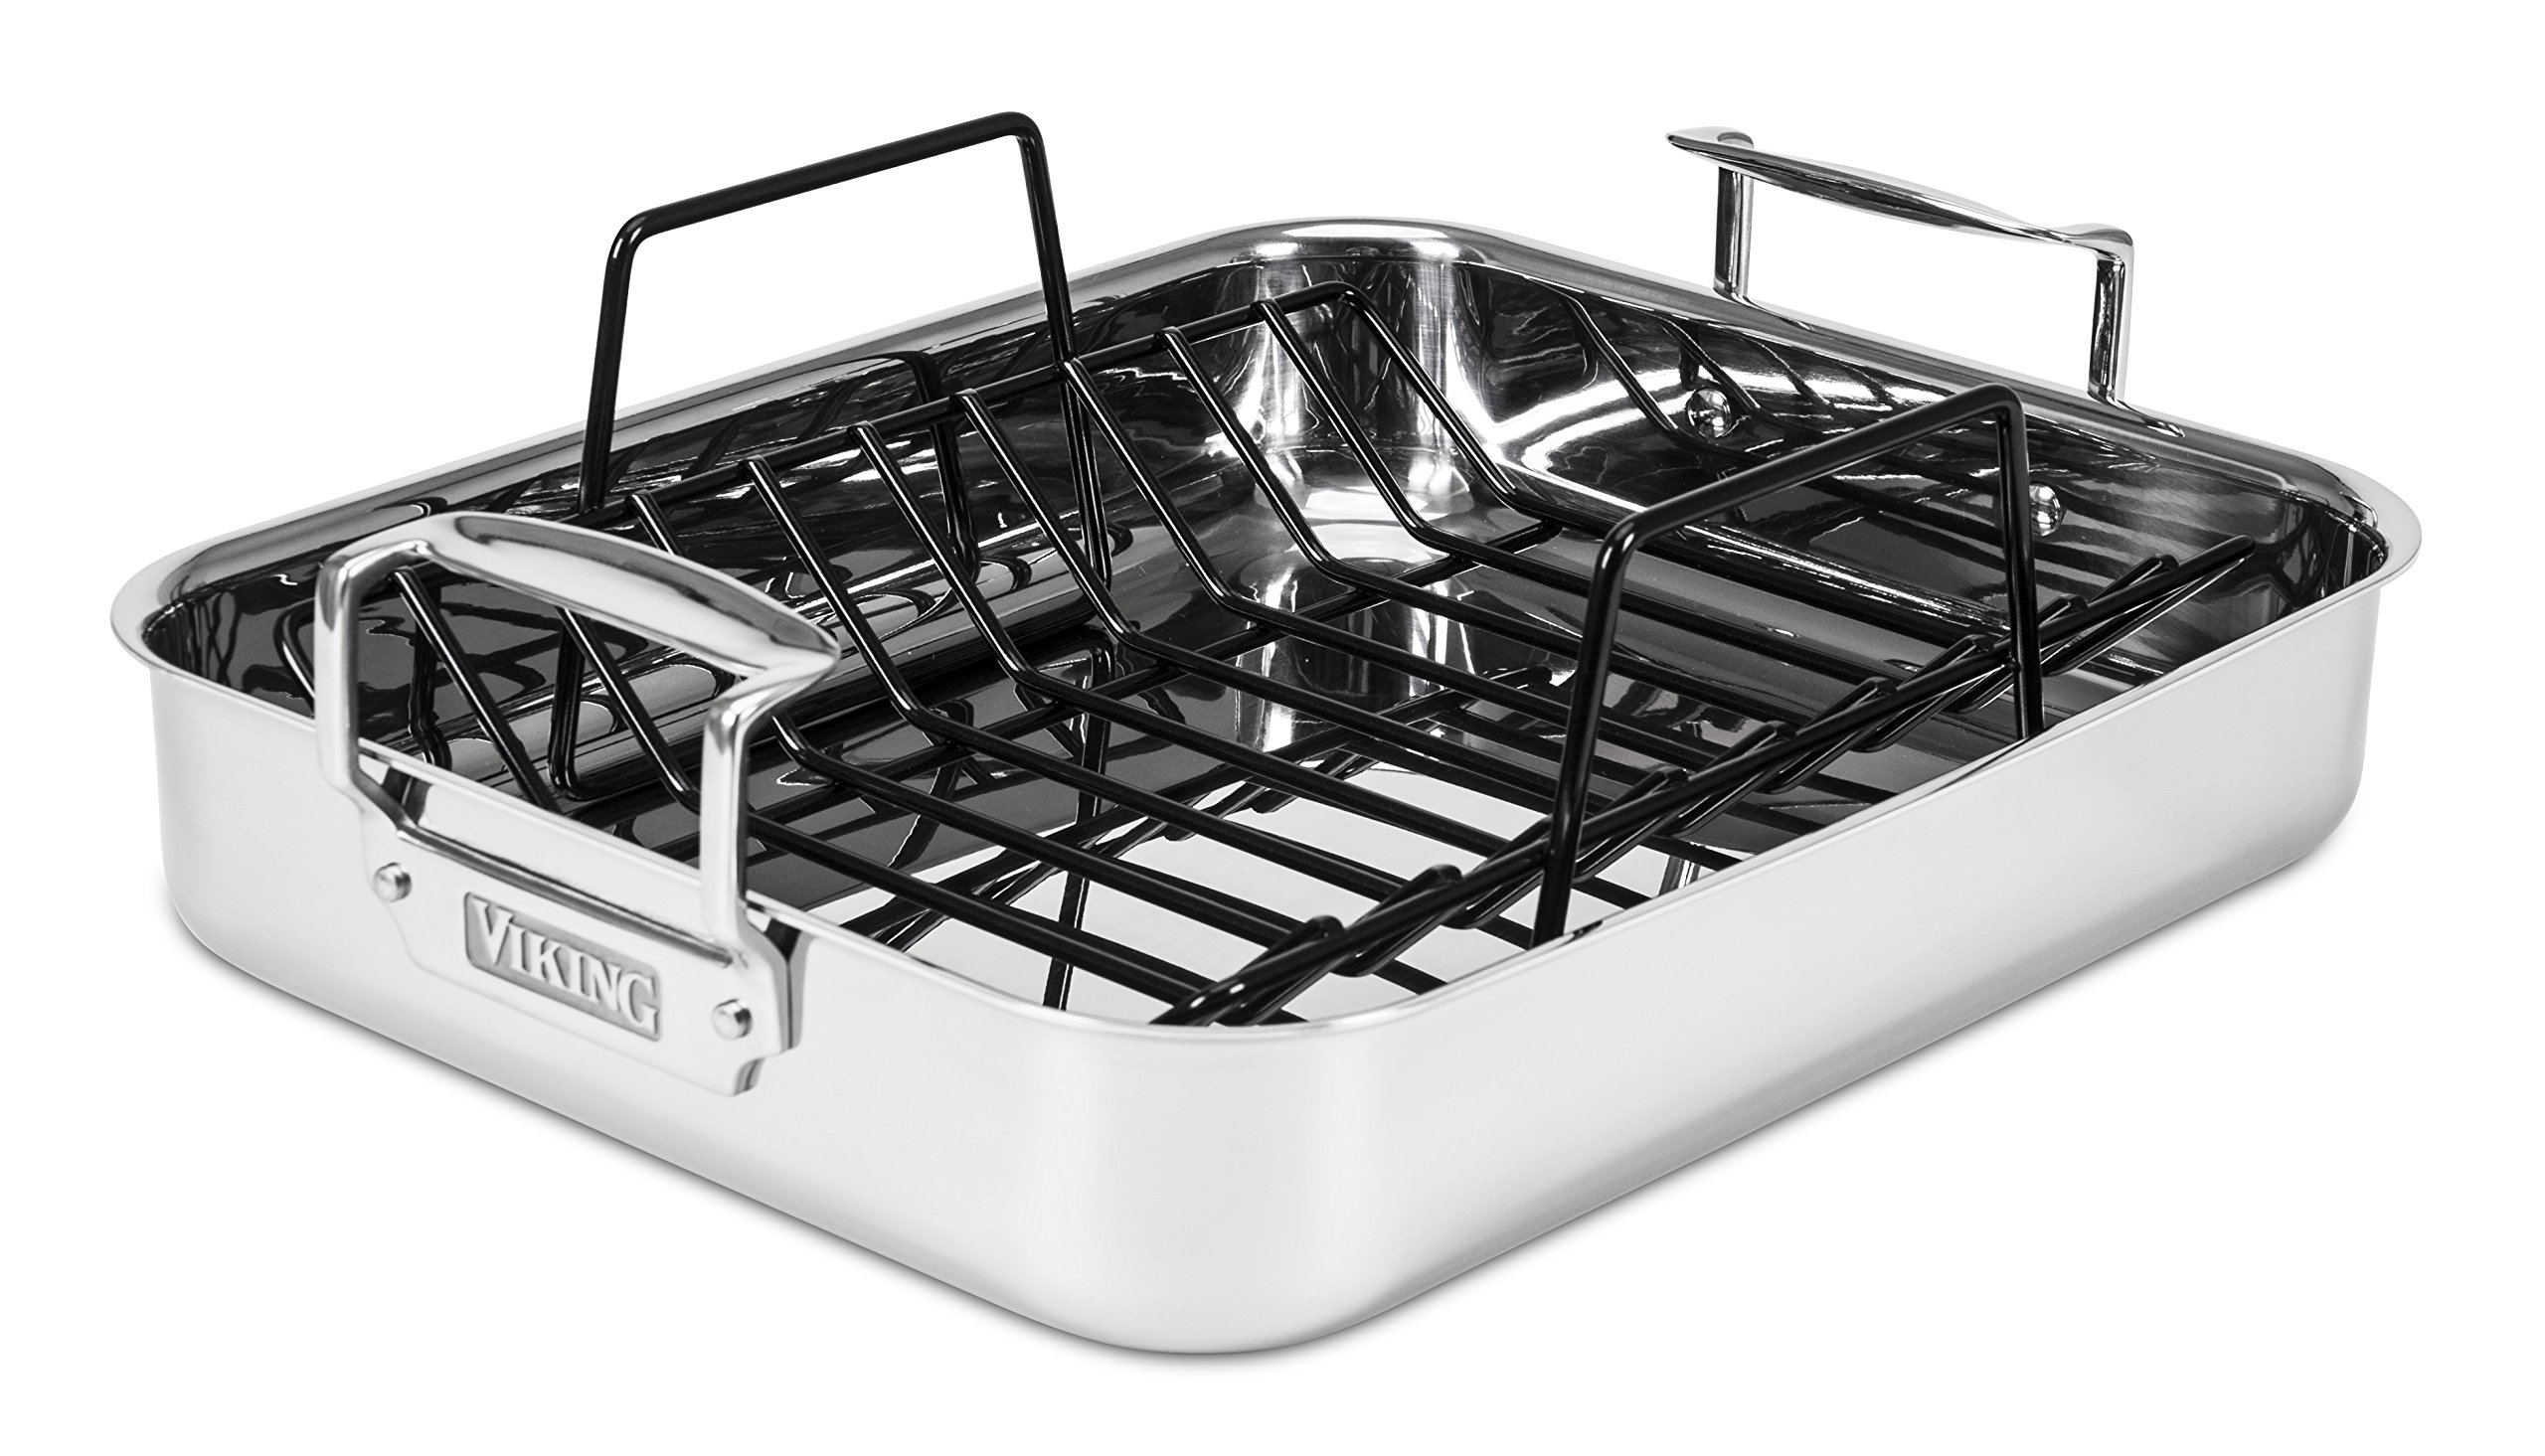 Viking 3-Ply Stainless Steel Roasting Pan with Nonstick Rack, 16 Inch by 13 Inch by Viking Culinary (Image #10)